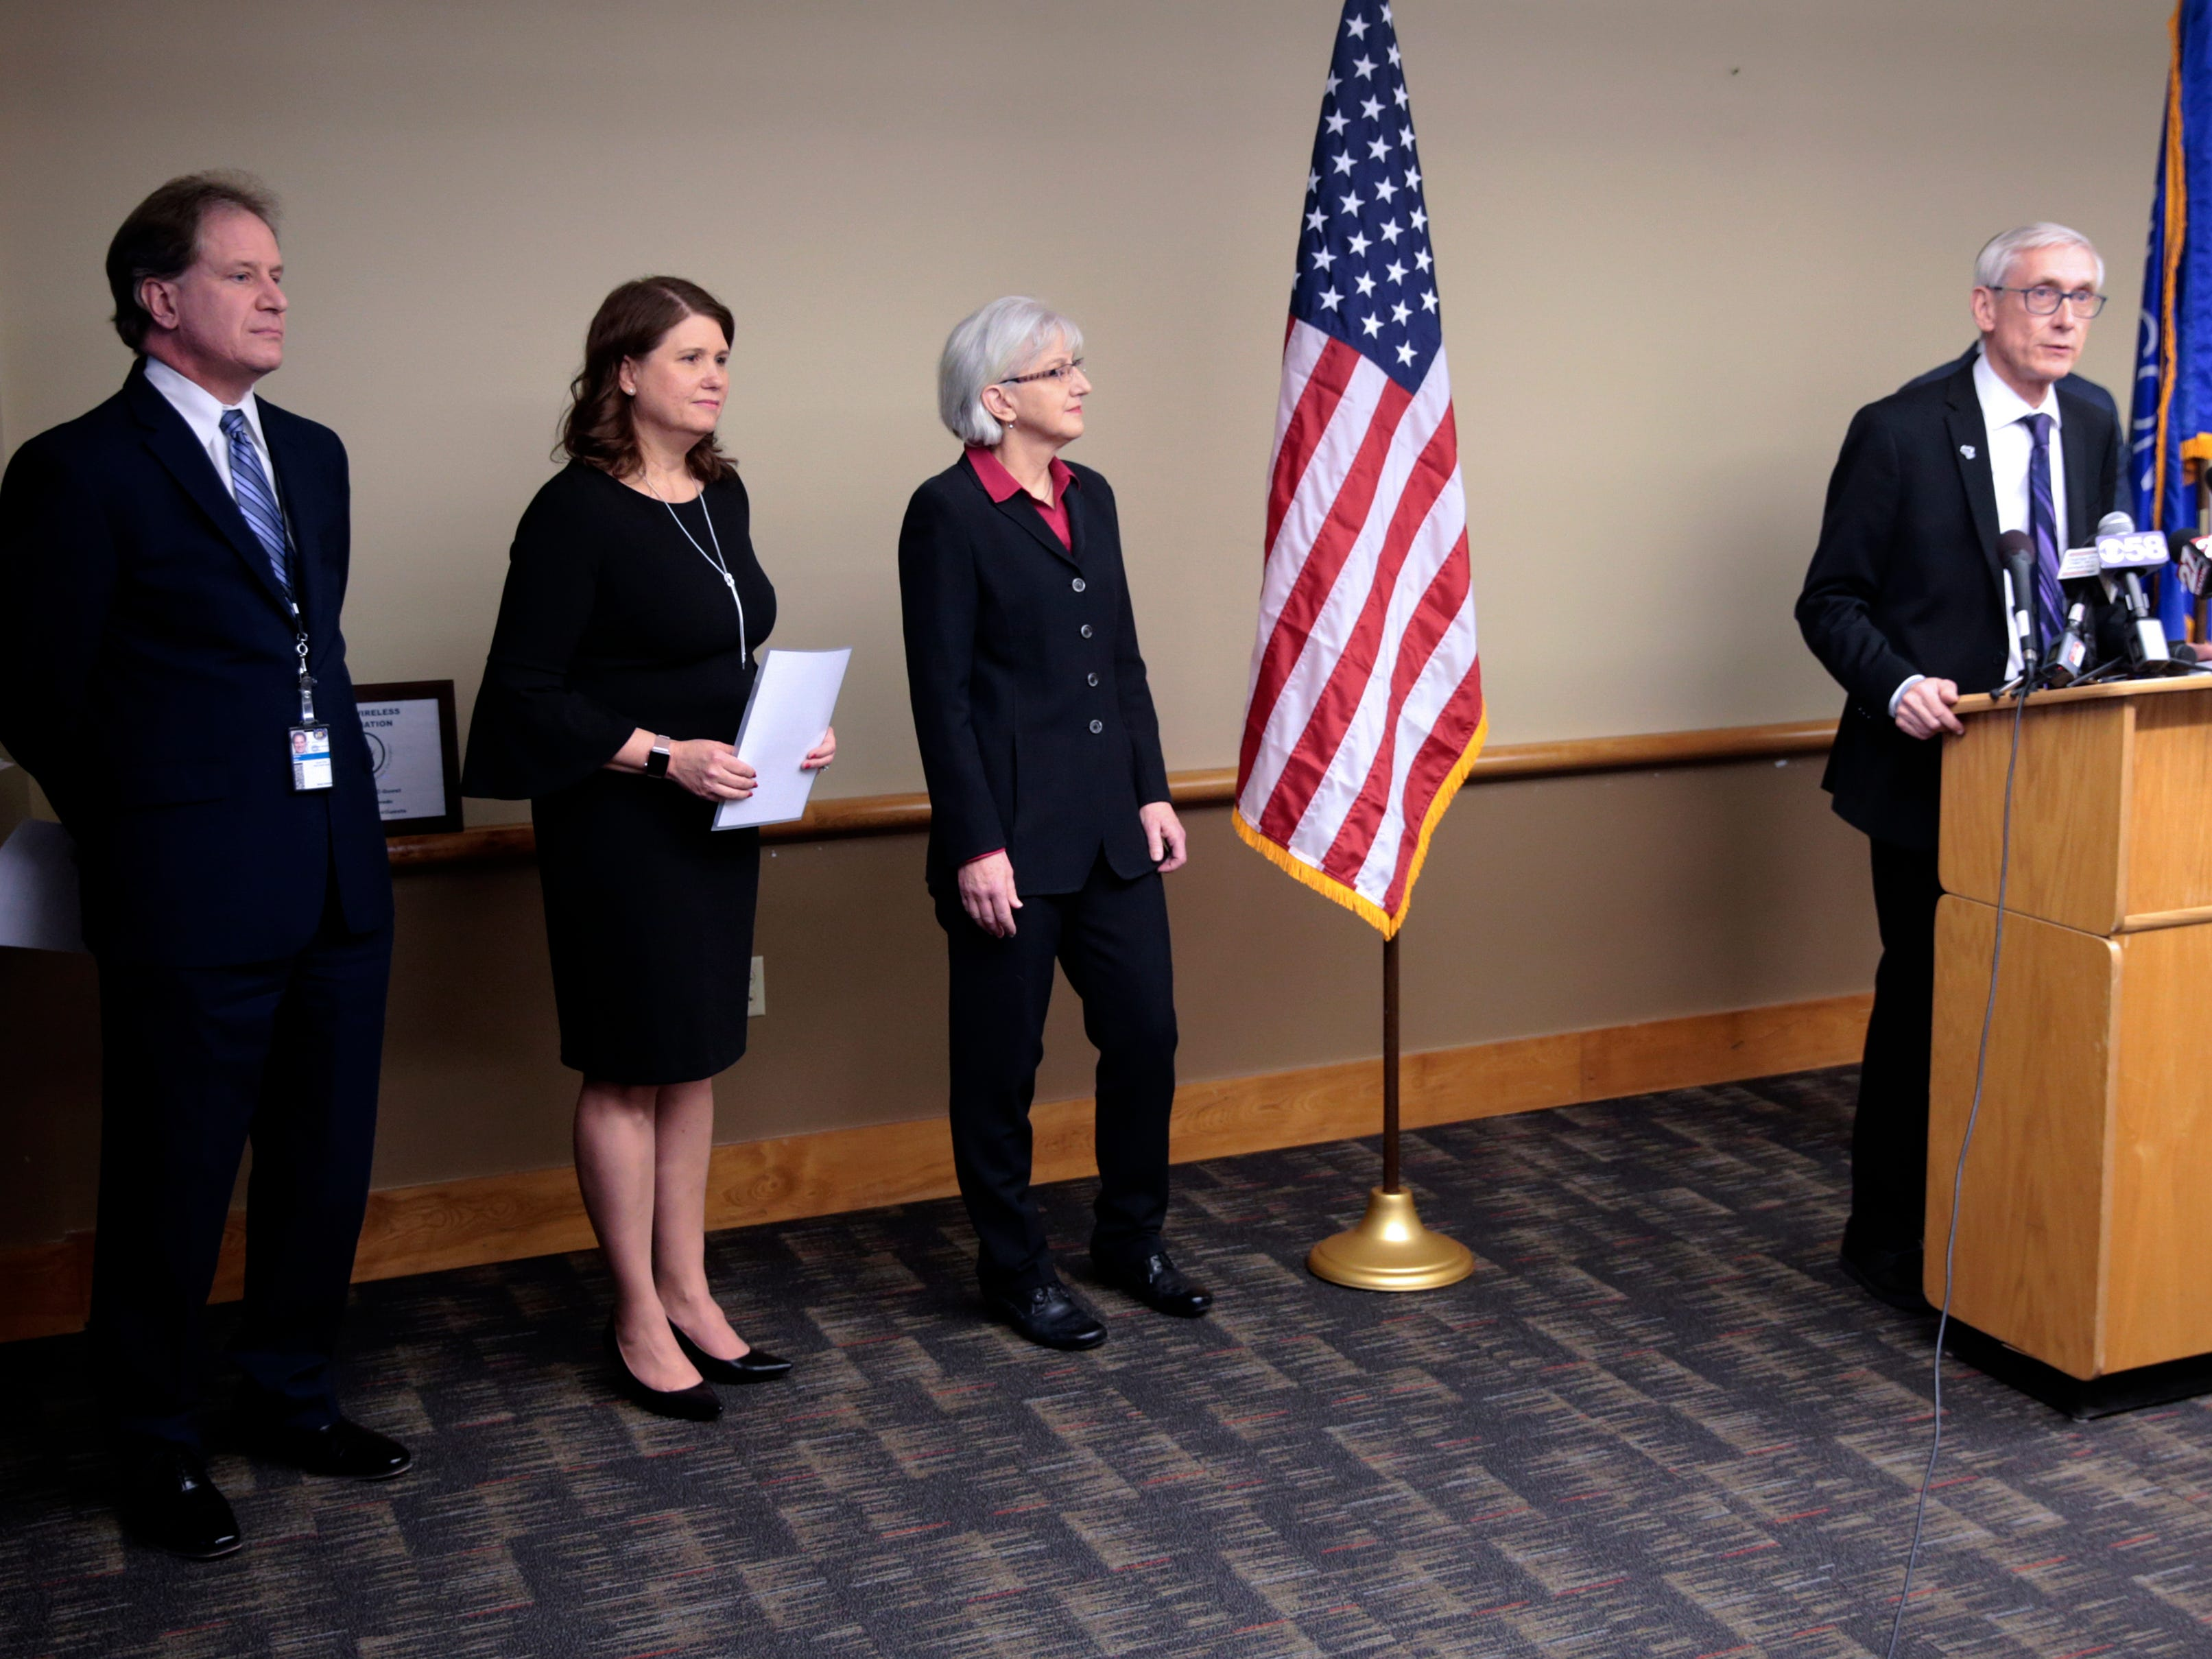 Gov.-elect Tony Evers announced his picks Friday for veterans secretary, financial institutions secretary and budget director. Pictured are Brian Pahnke, his pick for budget director; Kathy Koltin Blumenfeld, his pick for financial institutions secretary; Mary Kolar, his pick for veterans secretary; and Evers.